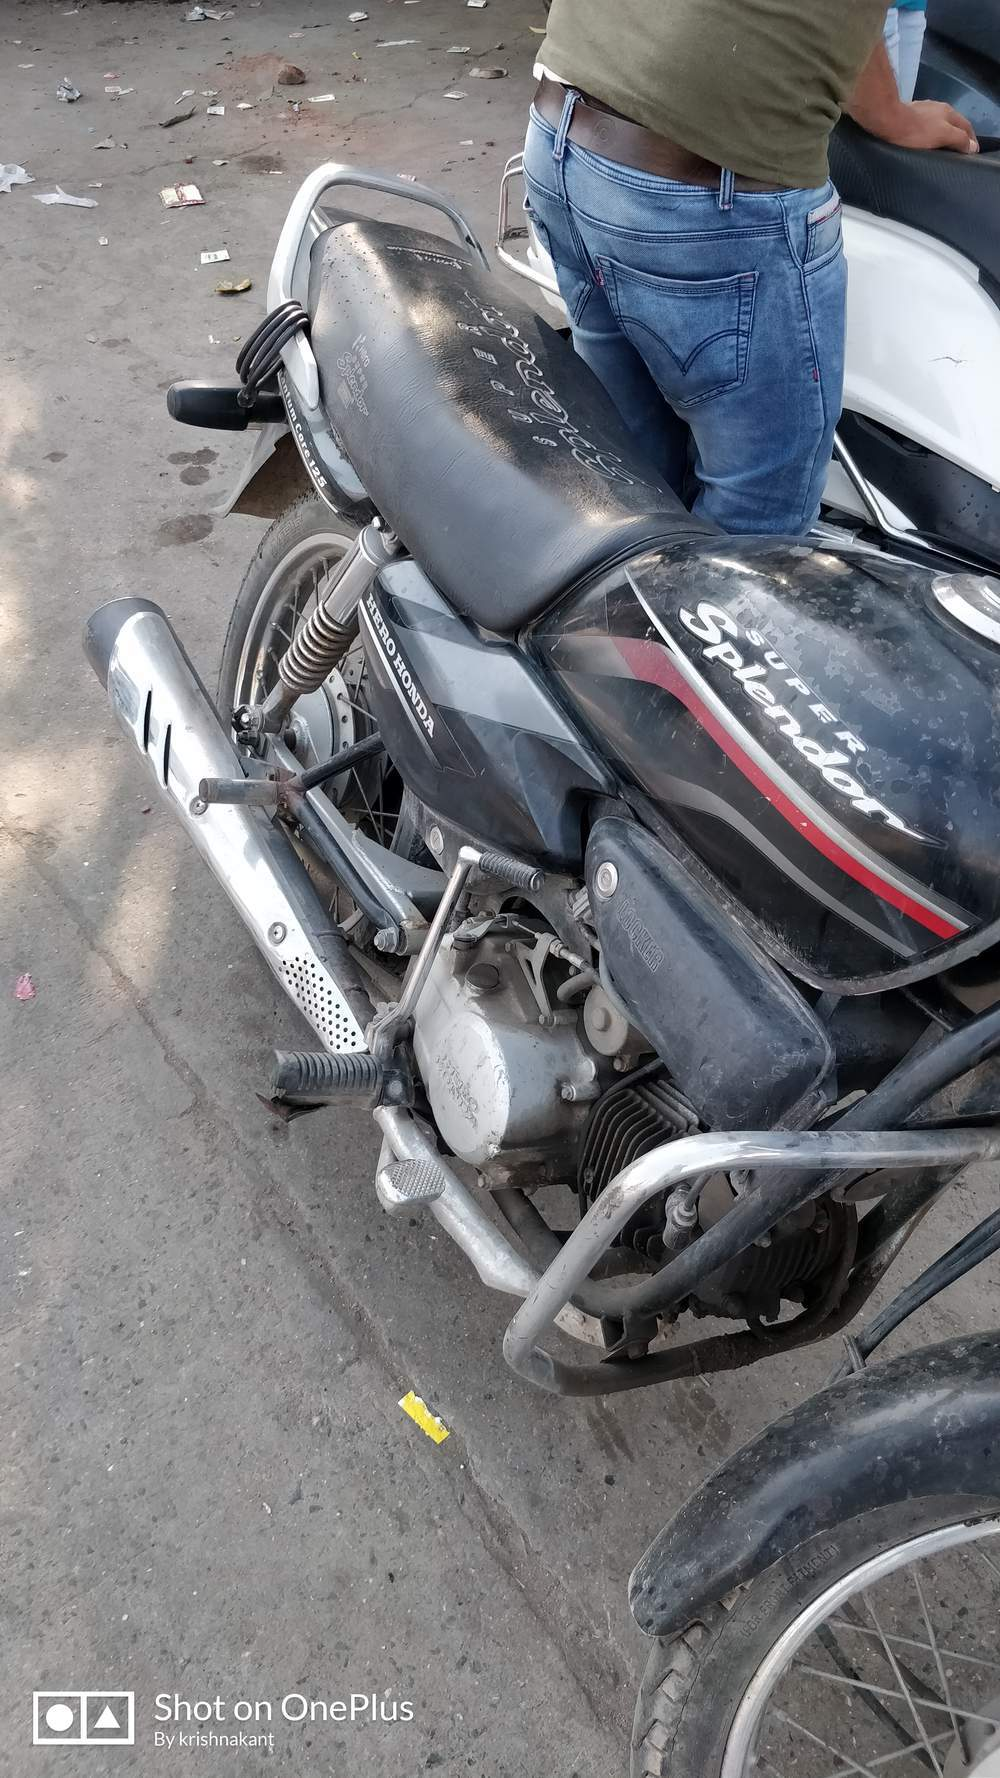 Hero Honda Splendor Super Front View